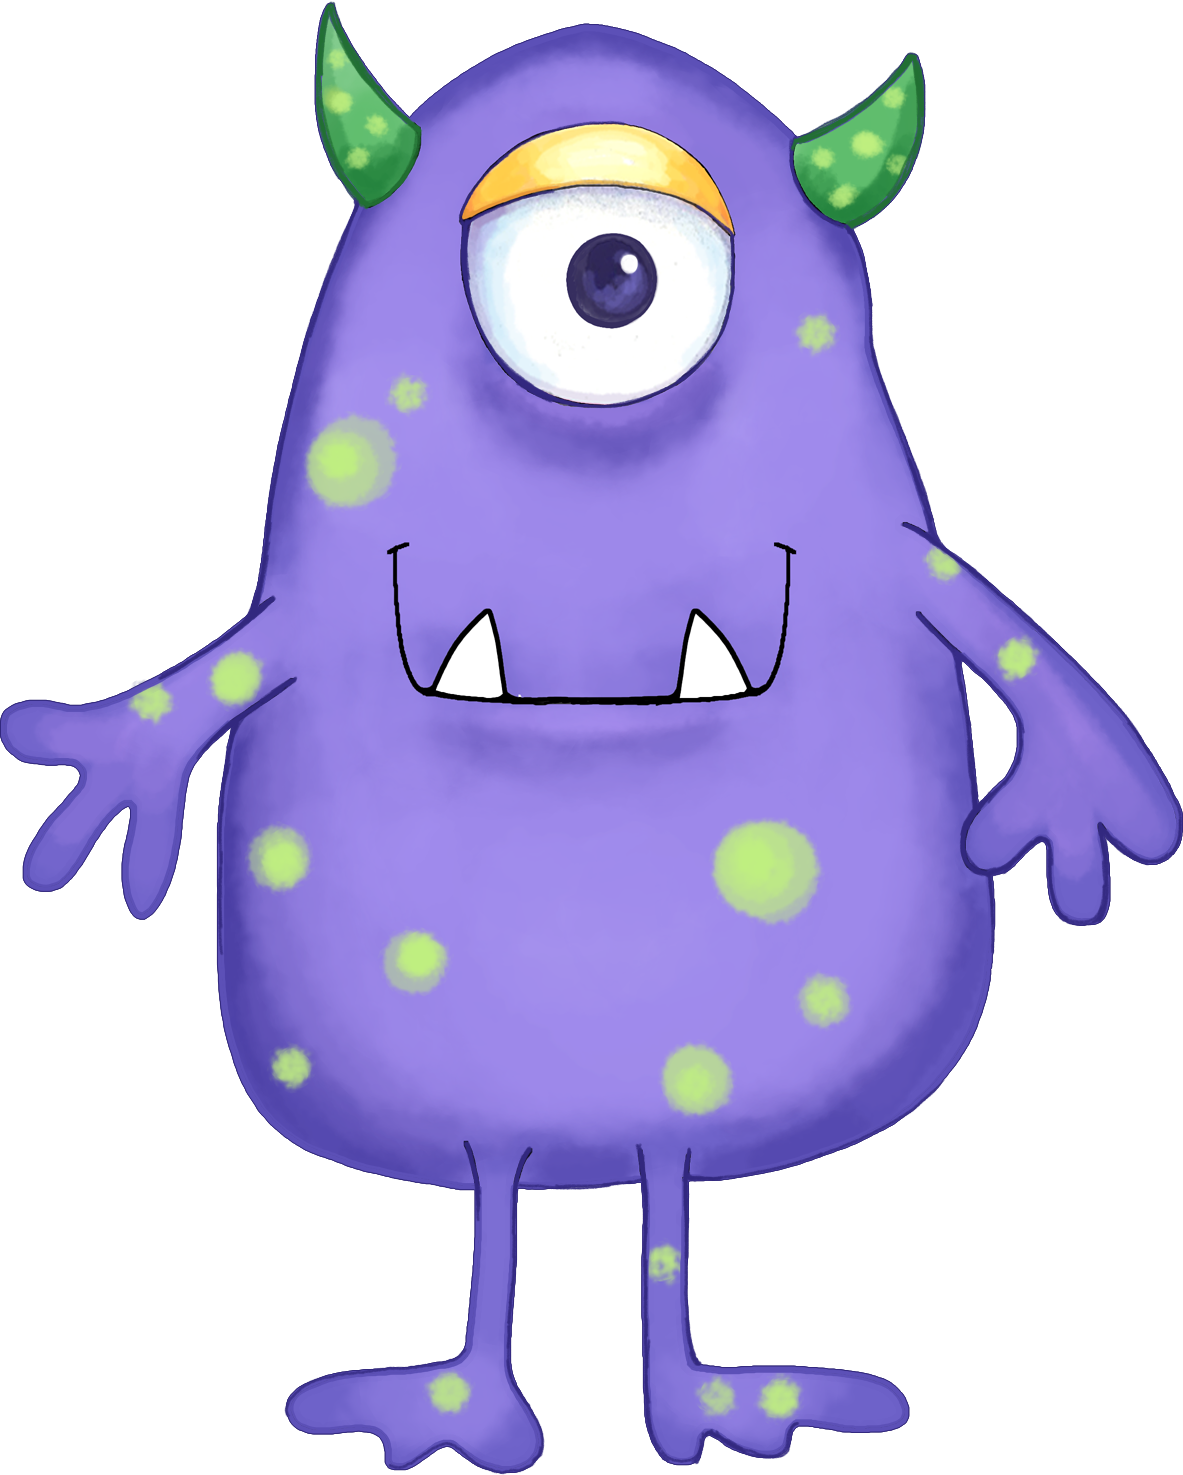 Pink Eyes clipart baby monster #5